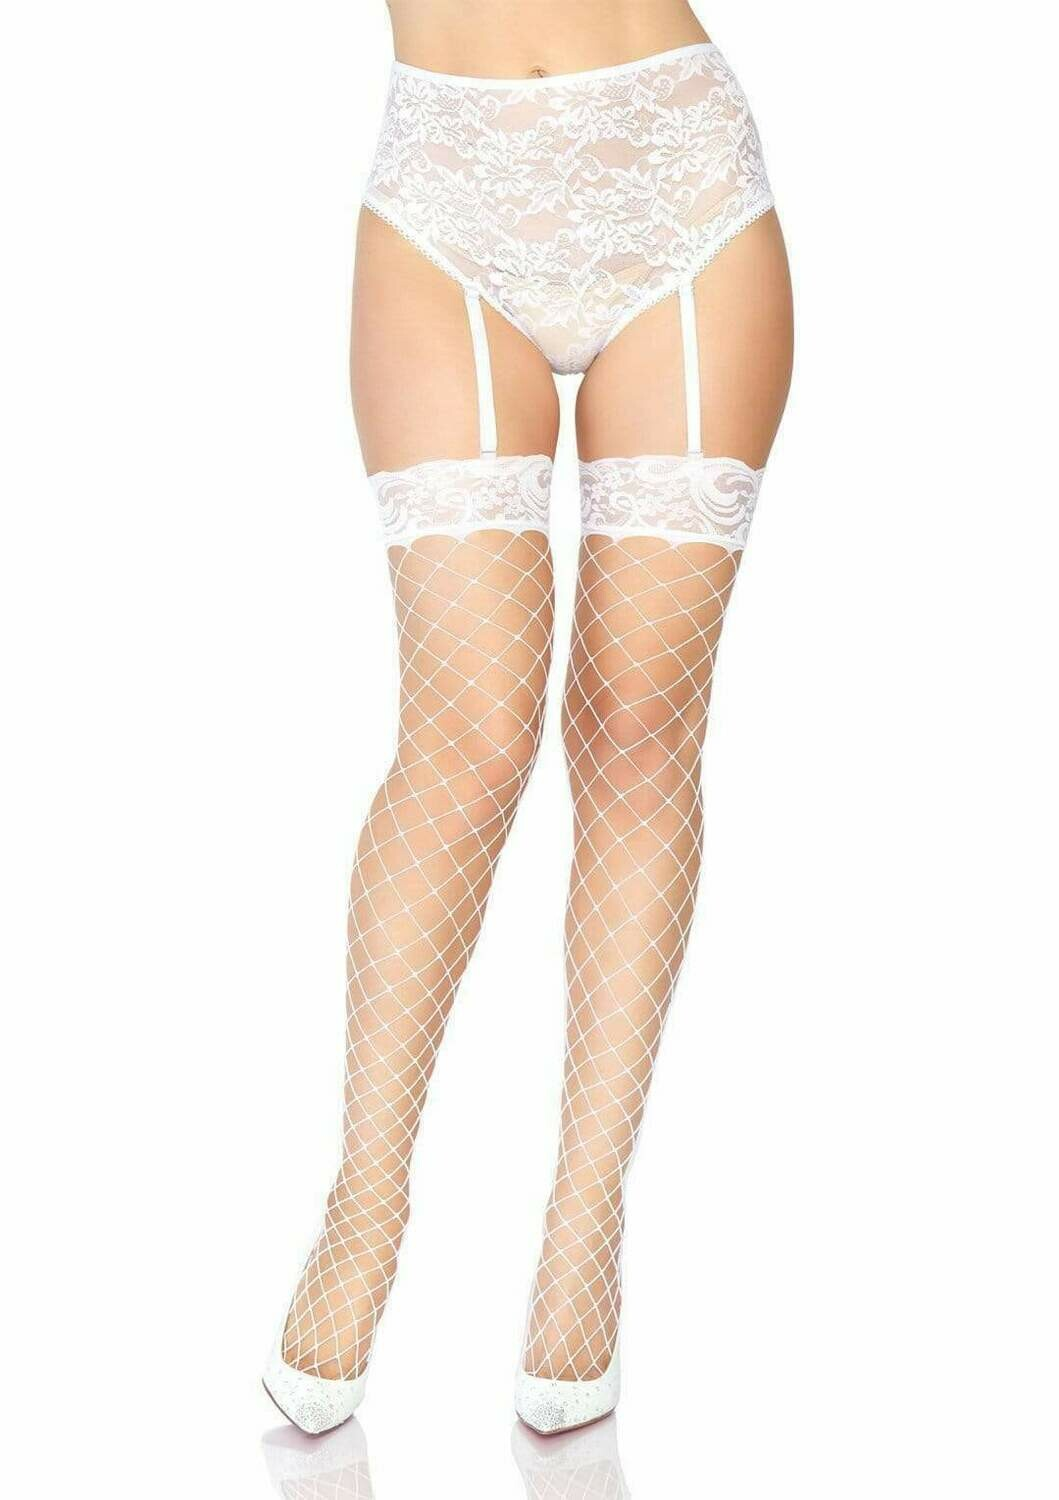 Fence Net Stockings